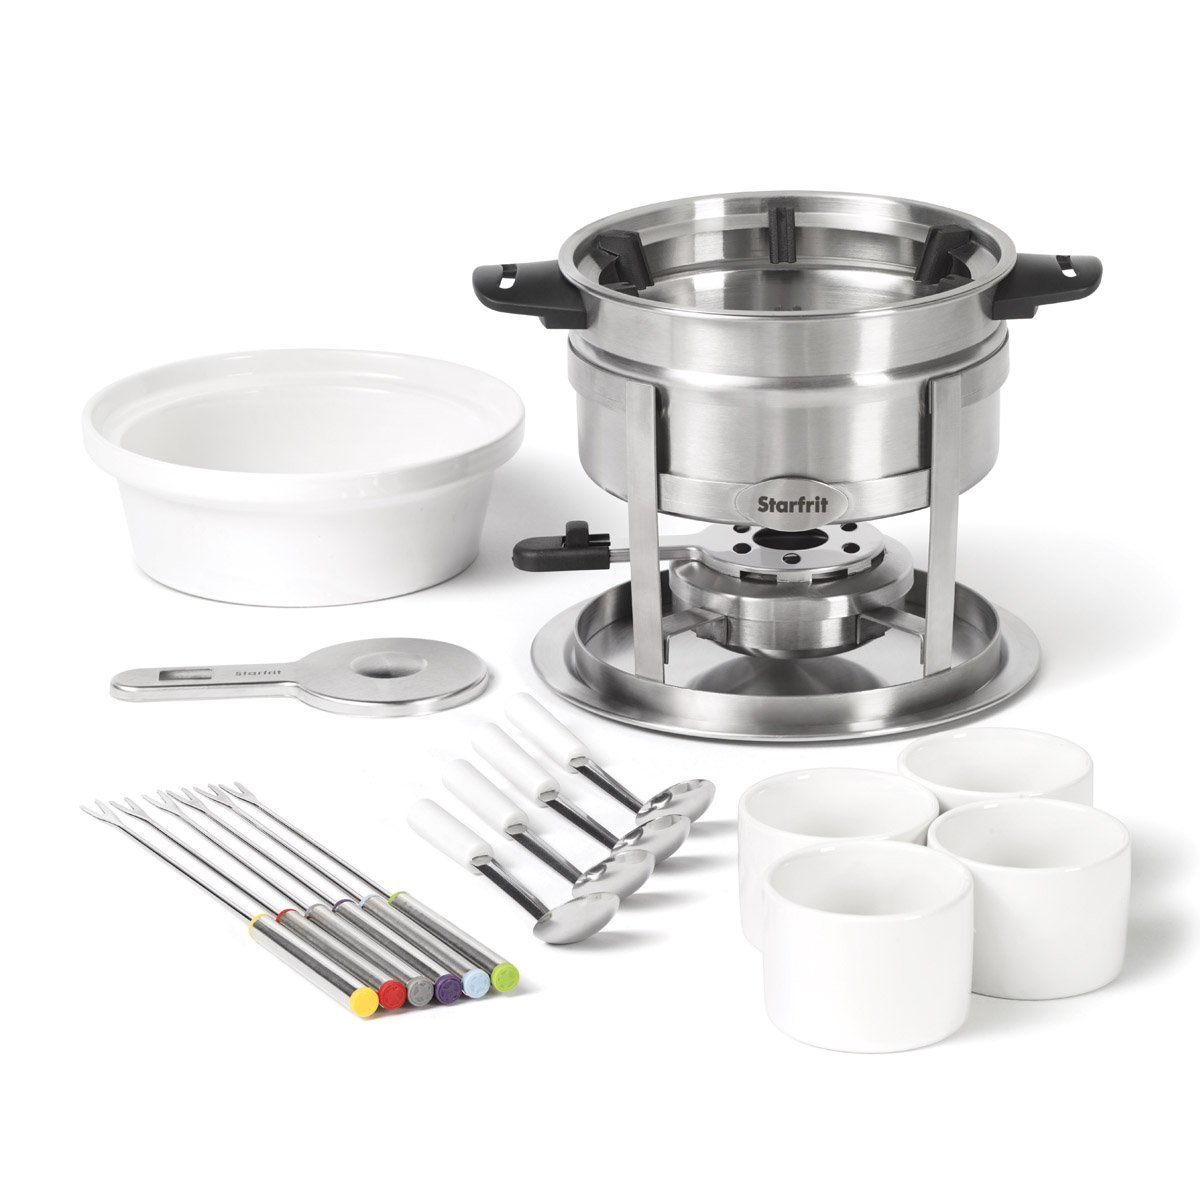 Starfrit 092522-004-0000 Starfrit 092522 Fondue 3-in-1 Set with Magnetic Fork Guide - 20 Pieces, 1.6L, Stainless